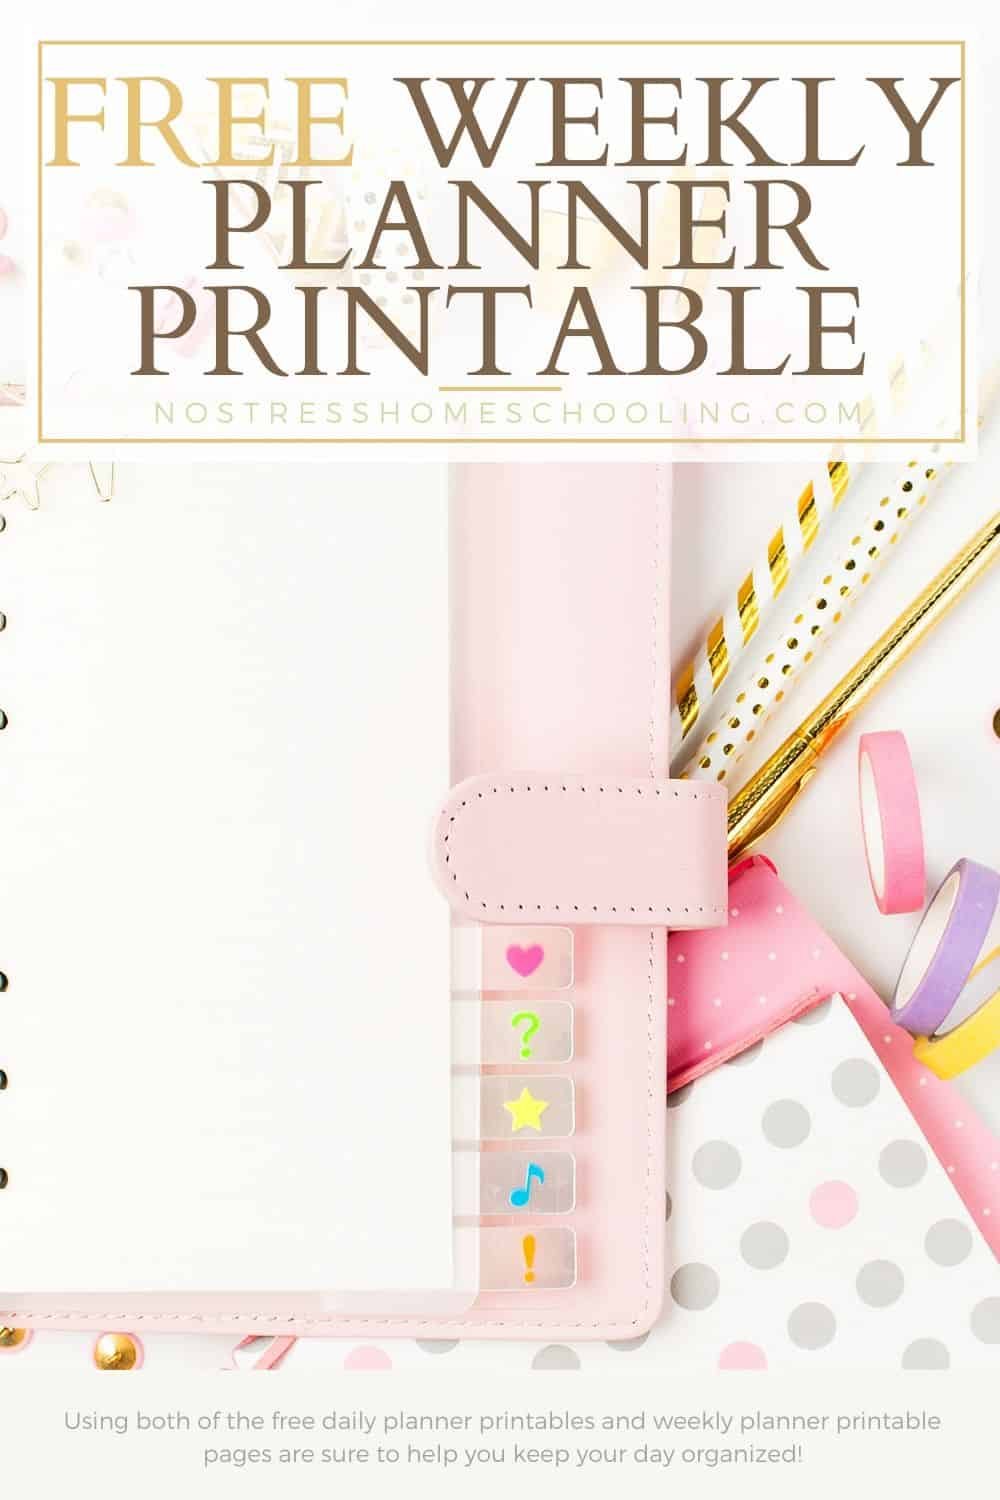 Using both of the free daily planner printables and weekly planner printable pages are sure to help you keep your day organized!